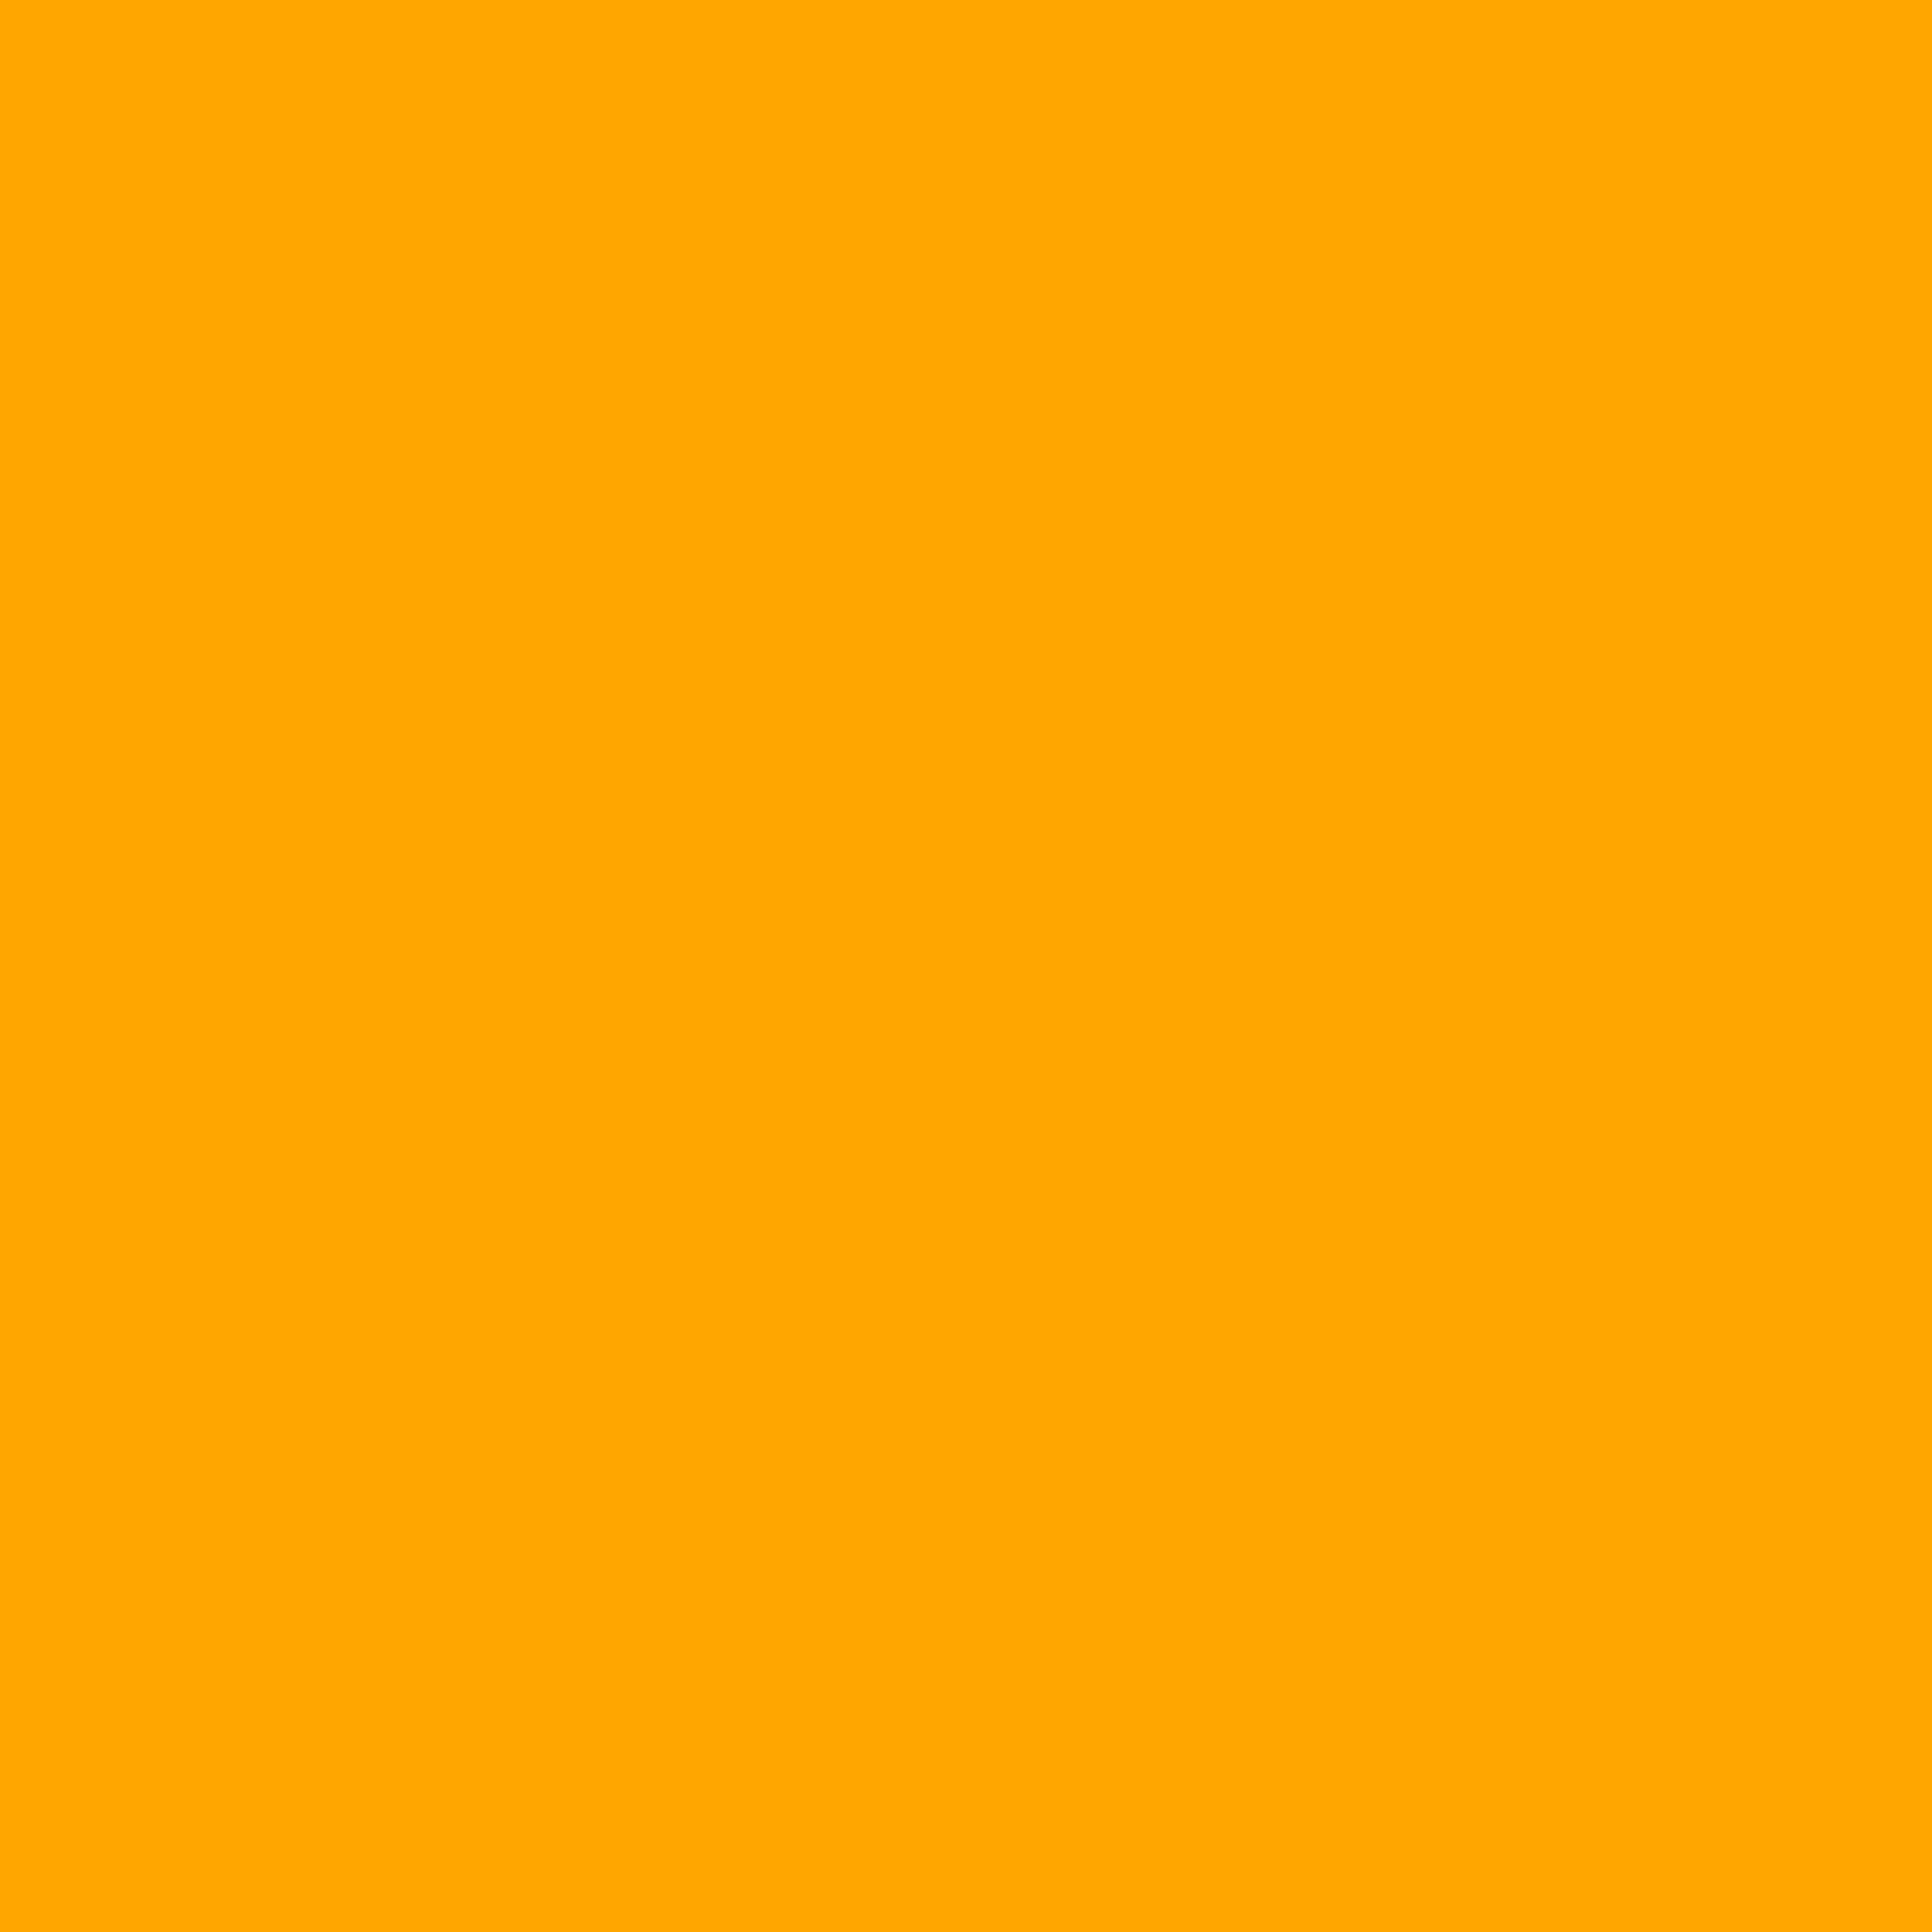 2048x2048 Chrome Yellow Solid Color Background